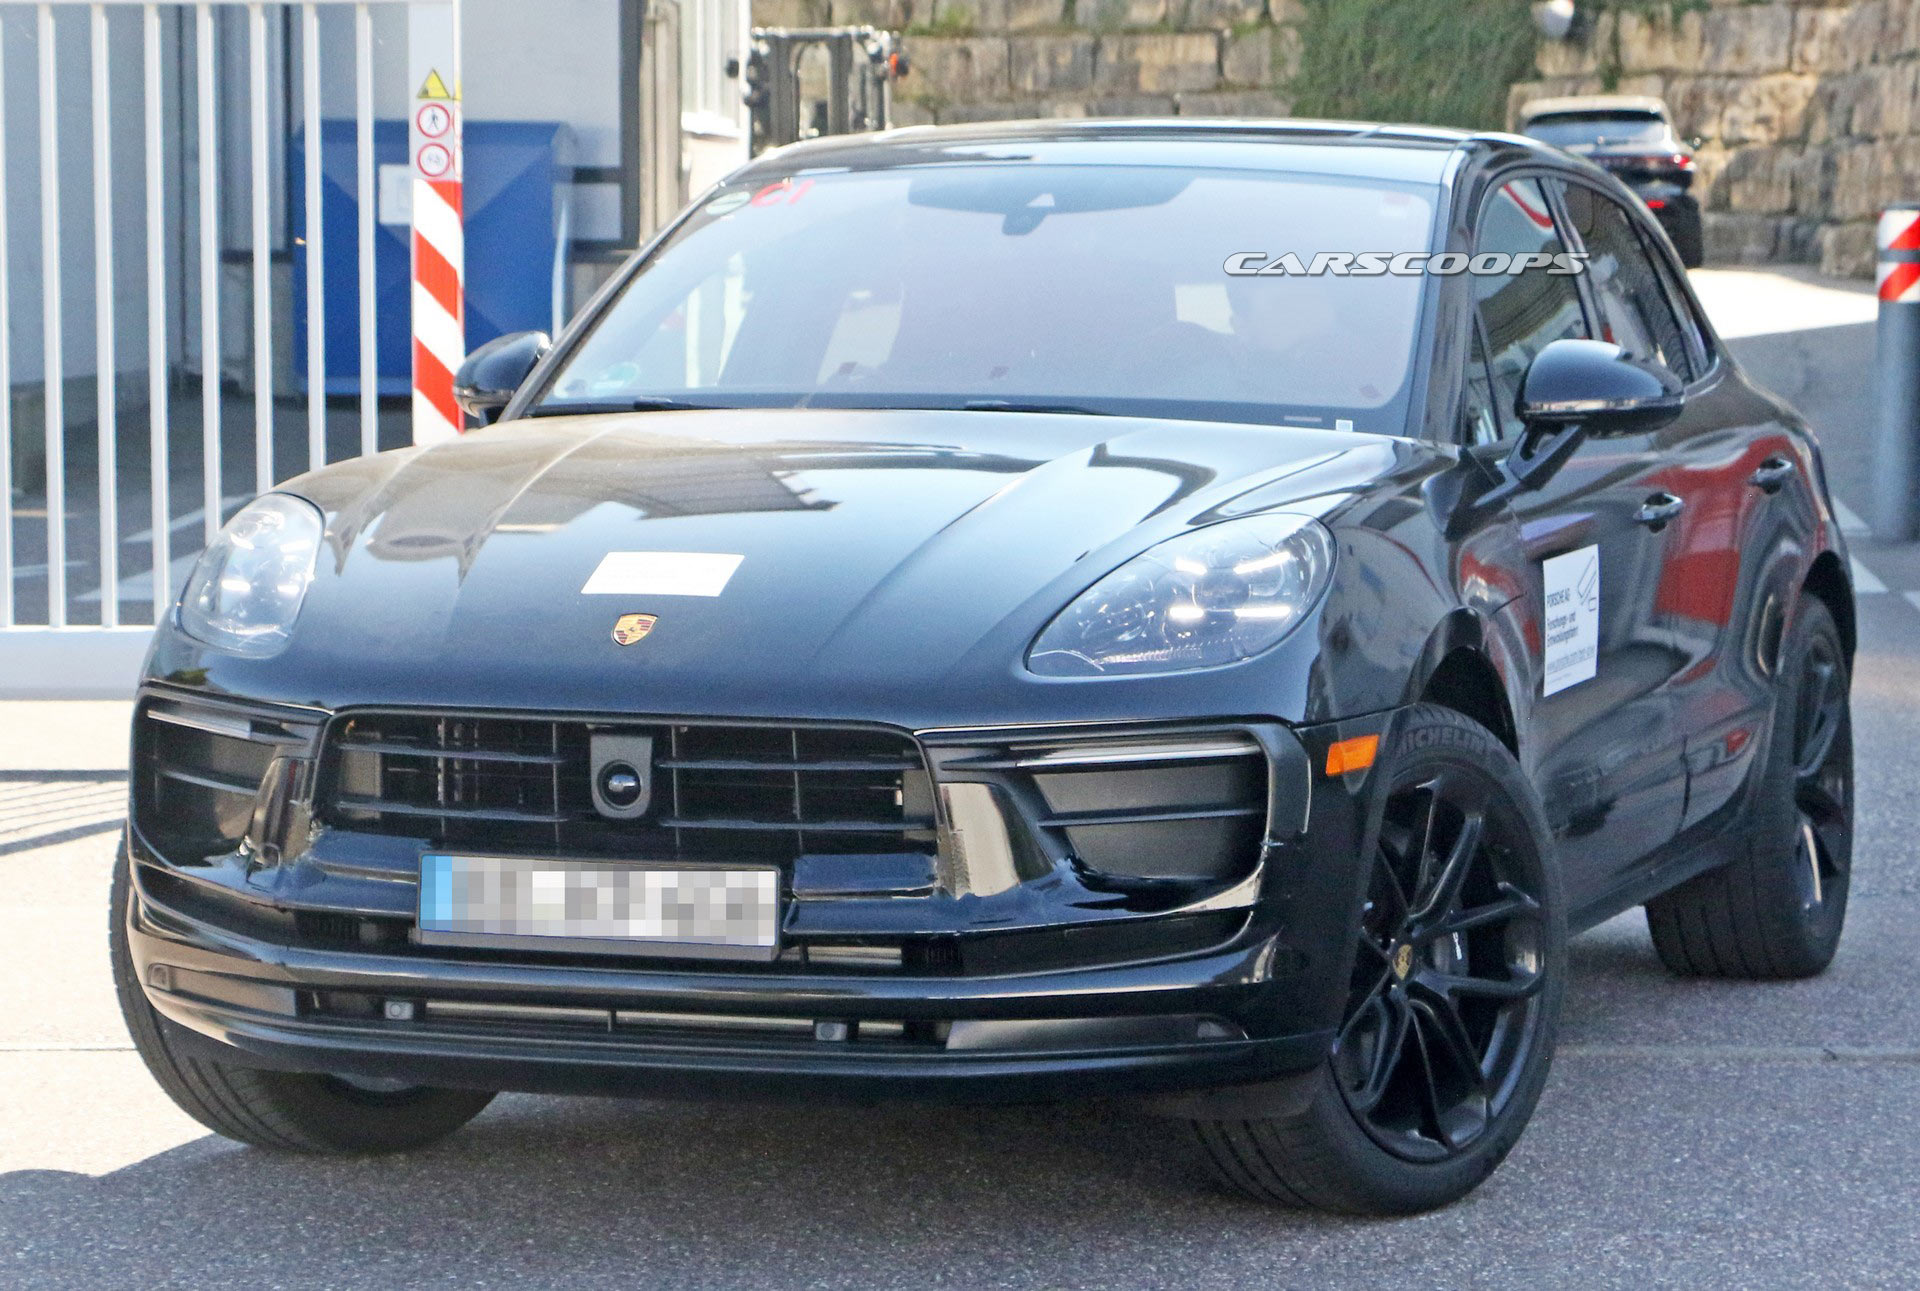 These latest spy shots depicting a 2021 Porsche Macan being driven in public remind us of the fact that the SUV hadn't had an update since 2018 (watch the video for that one).